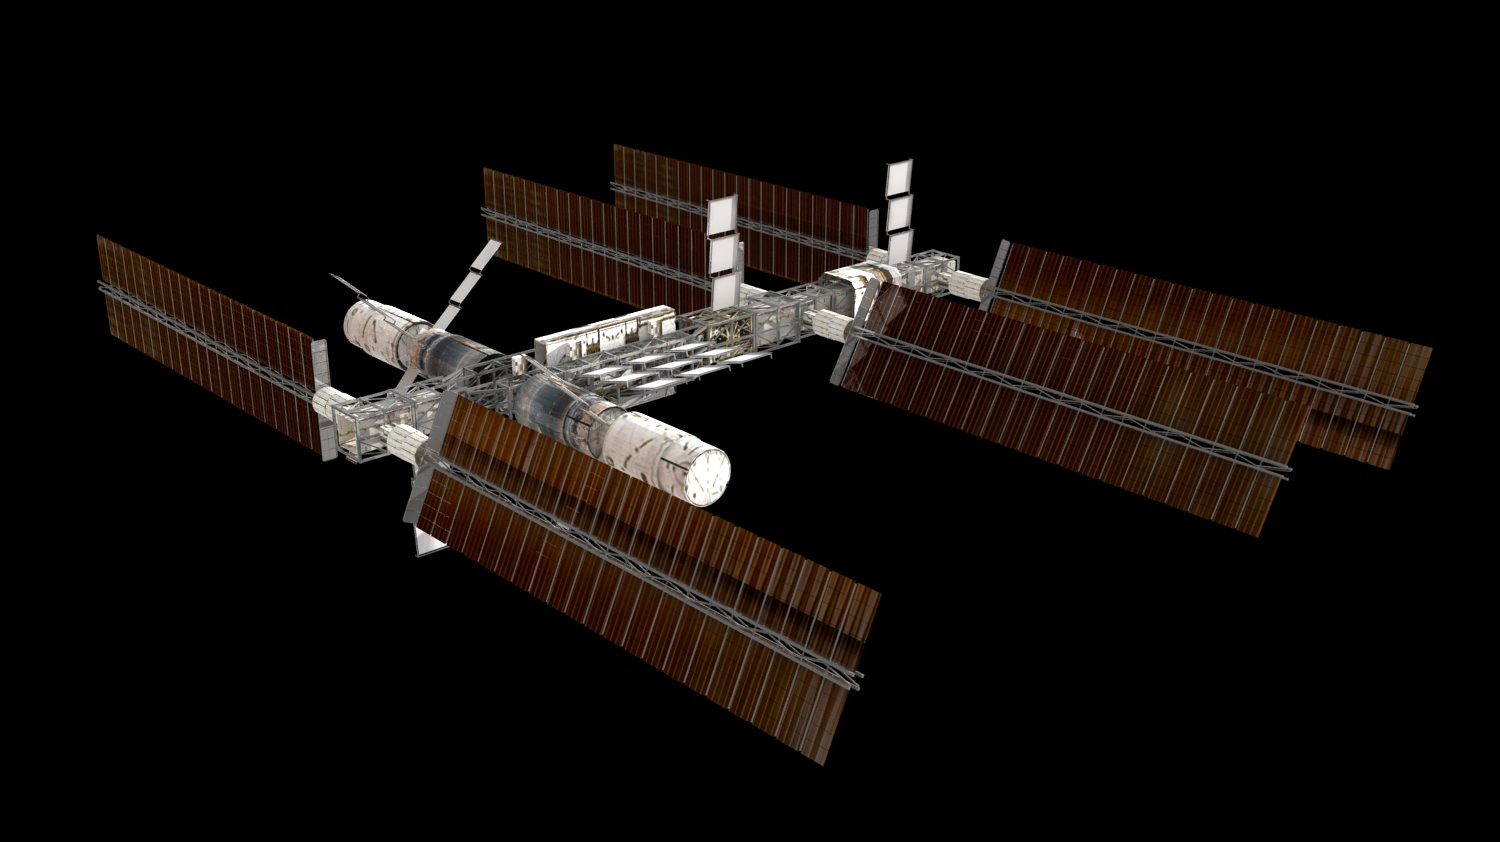 space station 3d models - photo #1